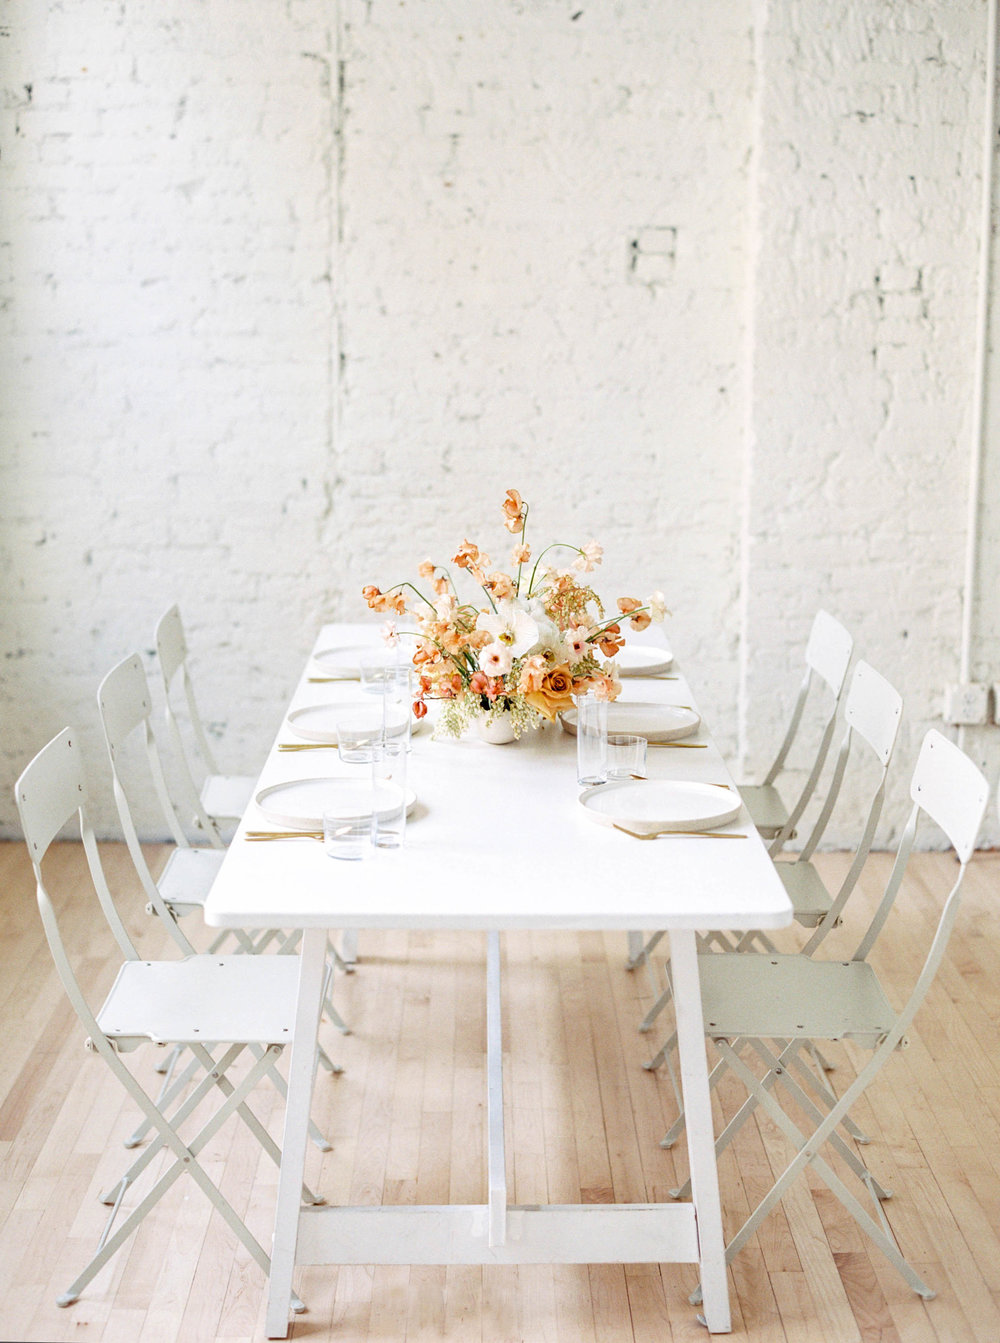 evergreen flower company jenna powers photography featured on wedding sparrow mod rehearsal styled shoot modern floral design minimalist design wedding flowers ceramic plates gold flatware zurie studio angie warren artistry makeup sarah weird hair